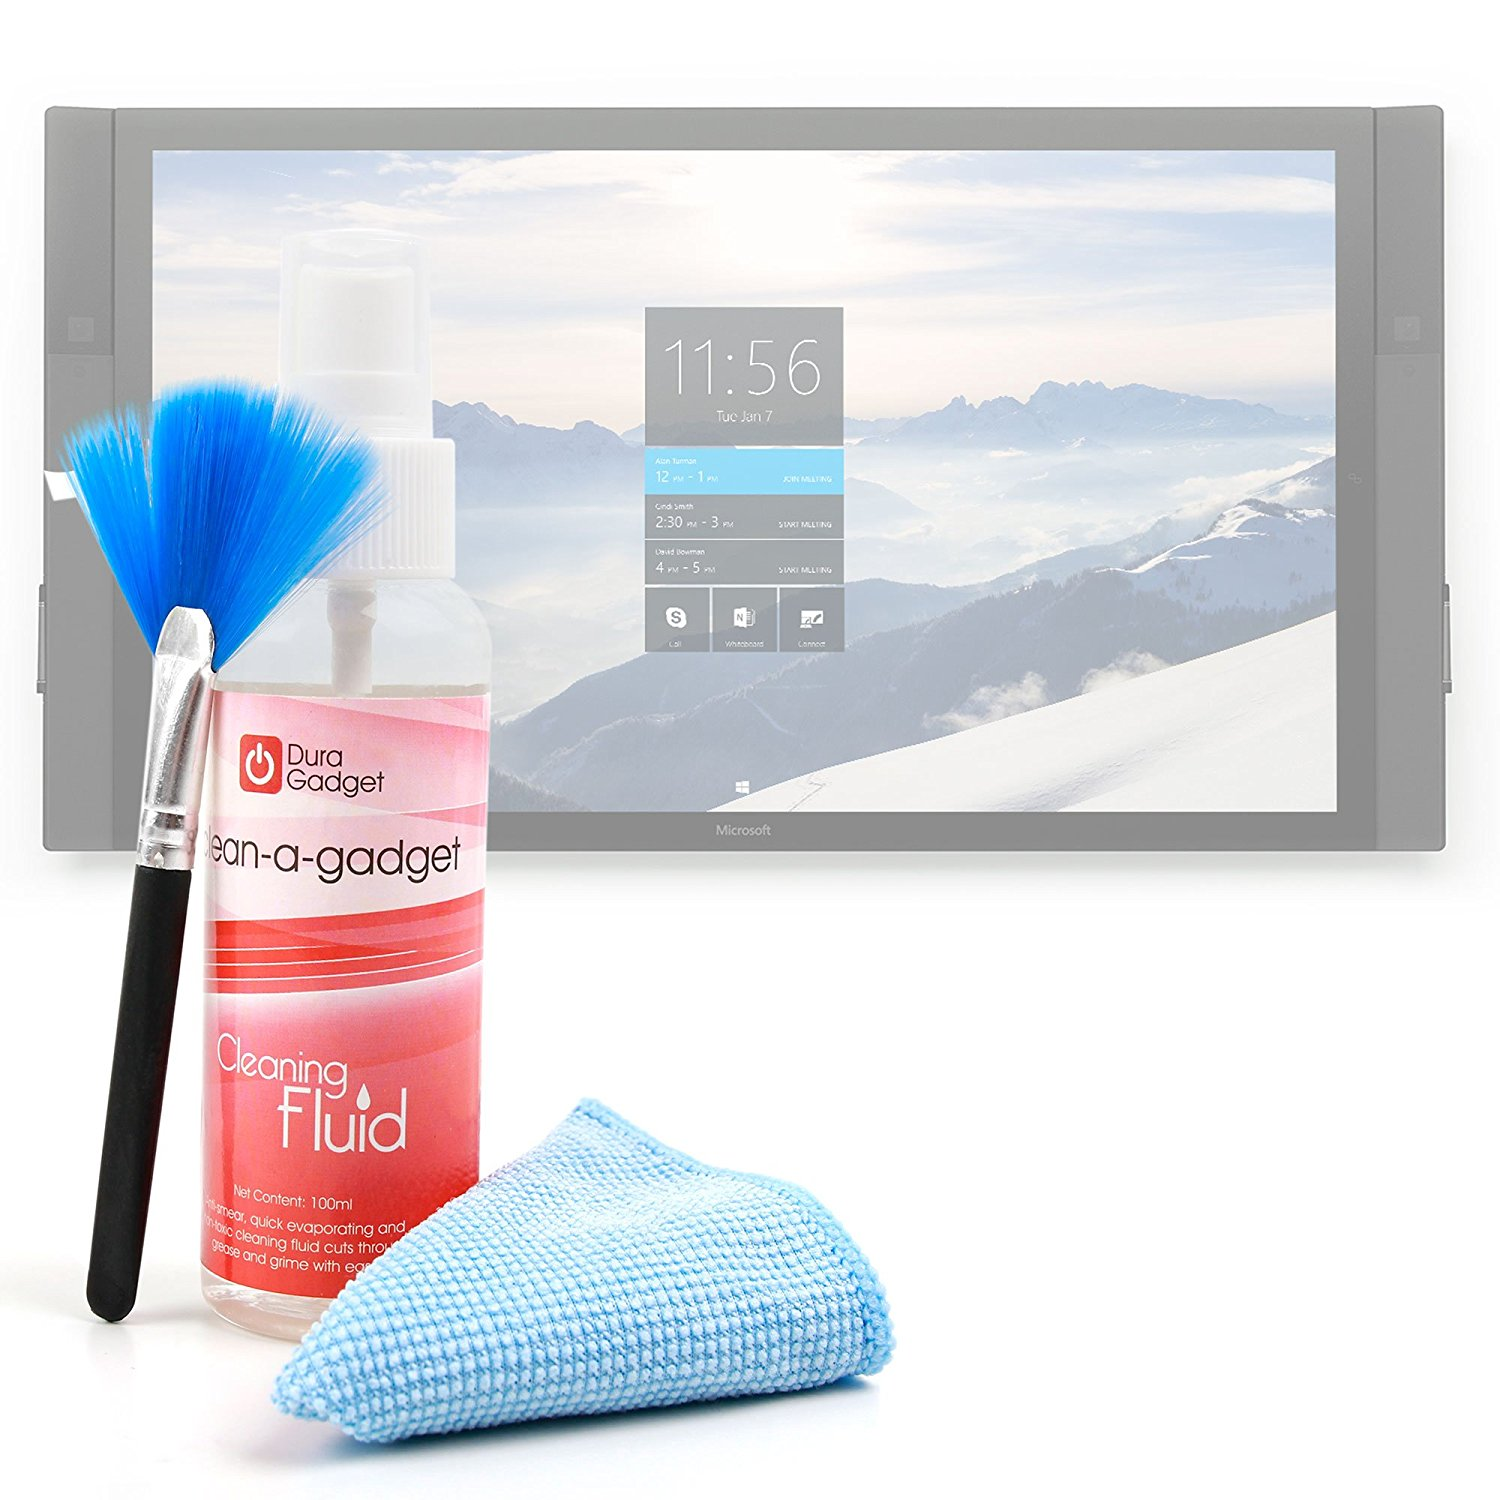 3-in-1 Multi-Purpose Cleaning Kit with Microfibre Cloth, Fluffy Brush and Non-Toxic Fluid for Acer Iconia One 10 B3-A20 Tablet - by DURAGADGET